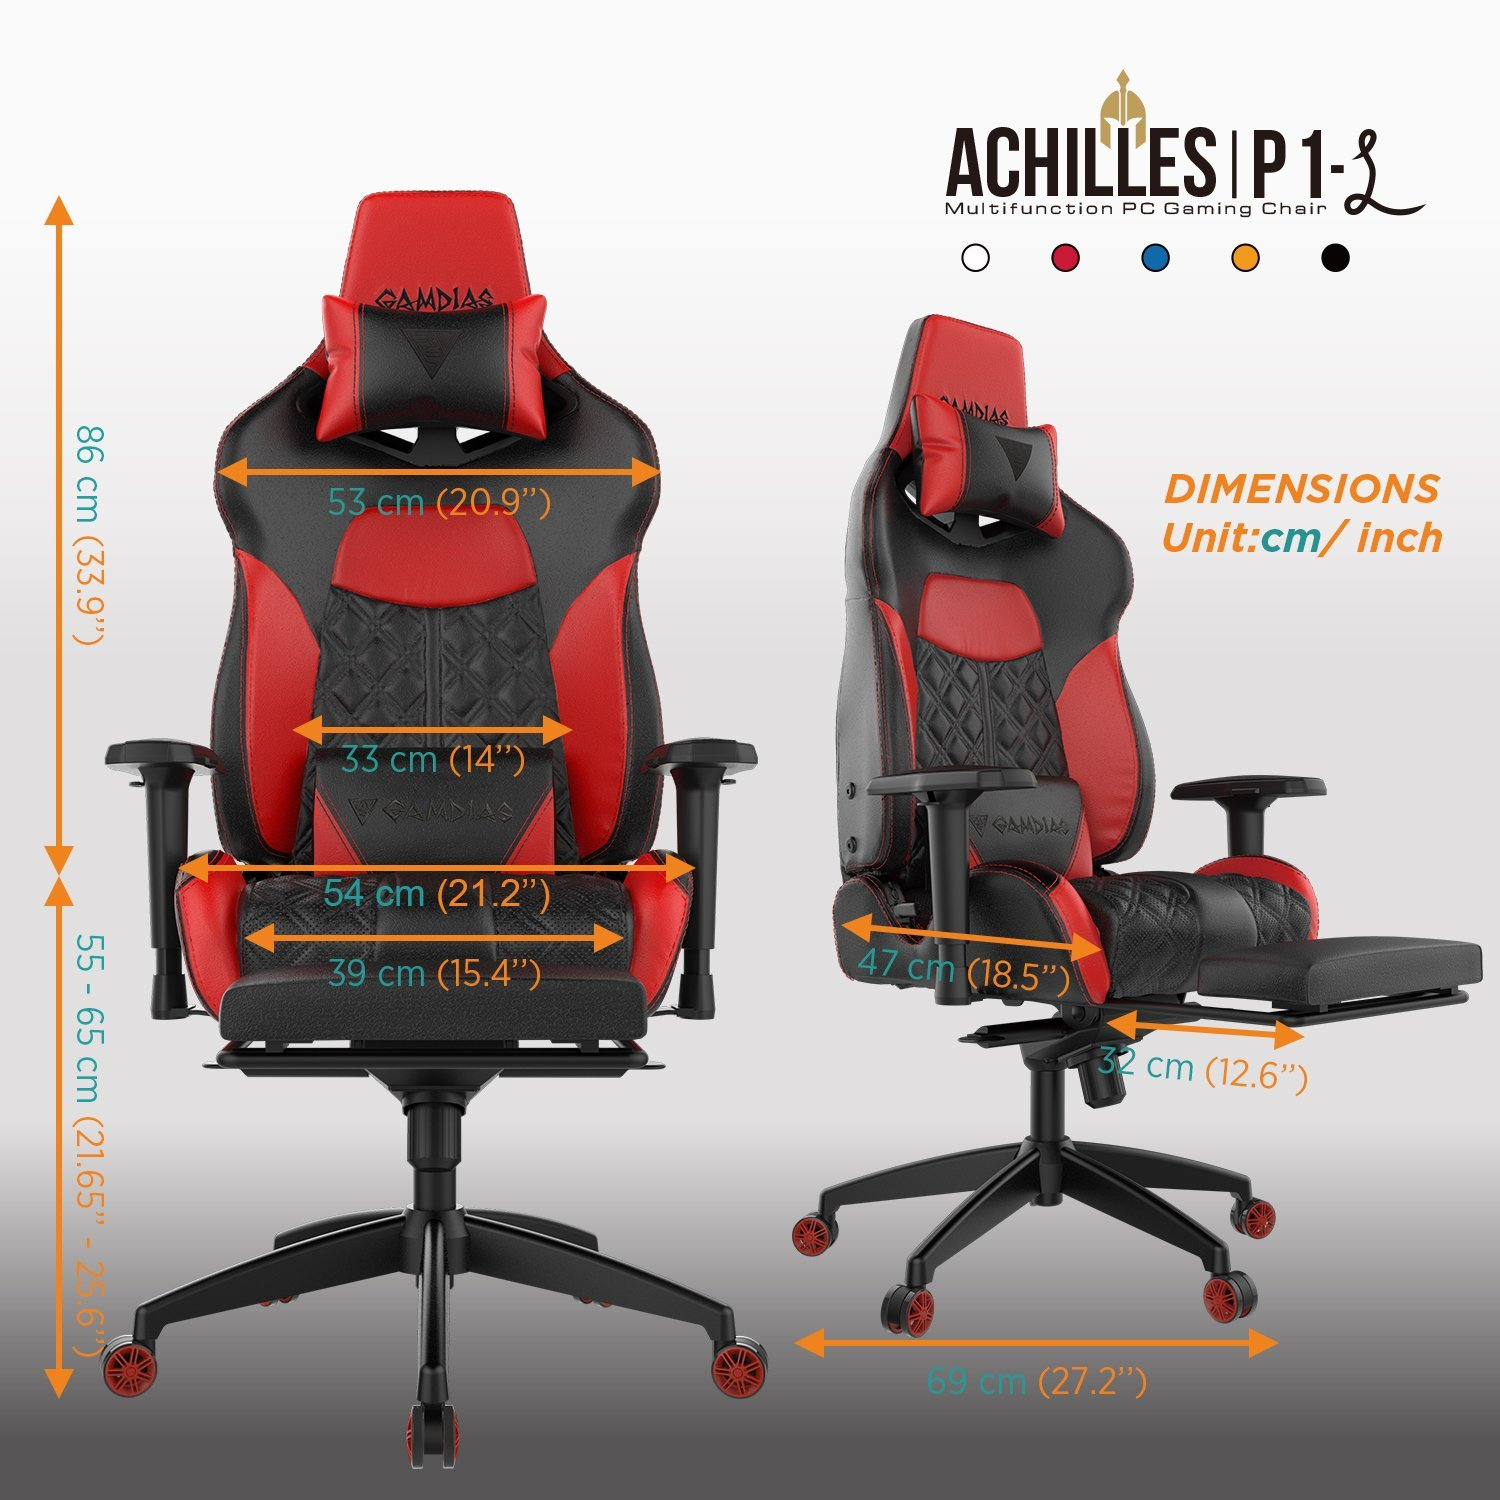 Gamdias Achilles P1 Gaming Chair Image 4